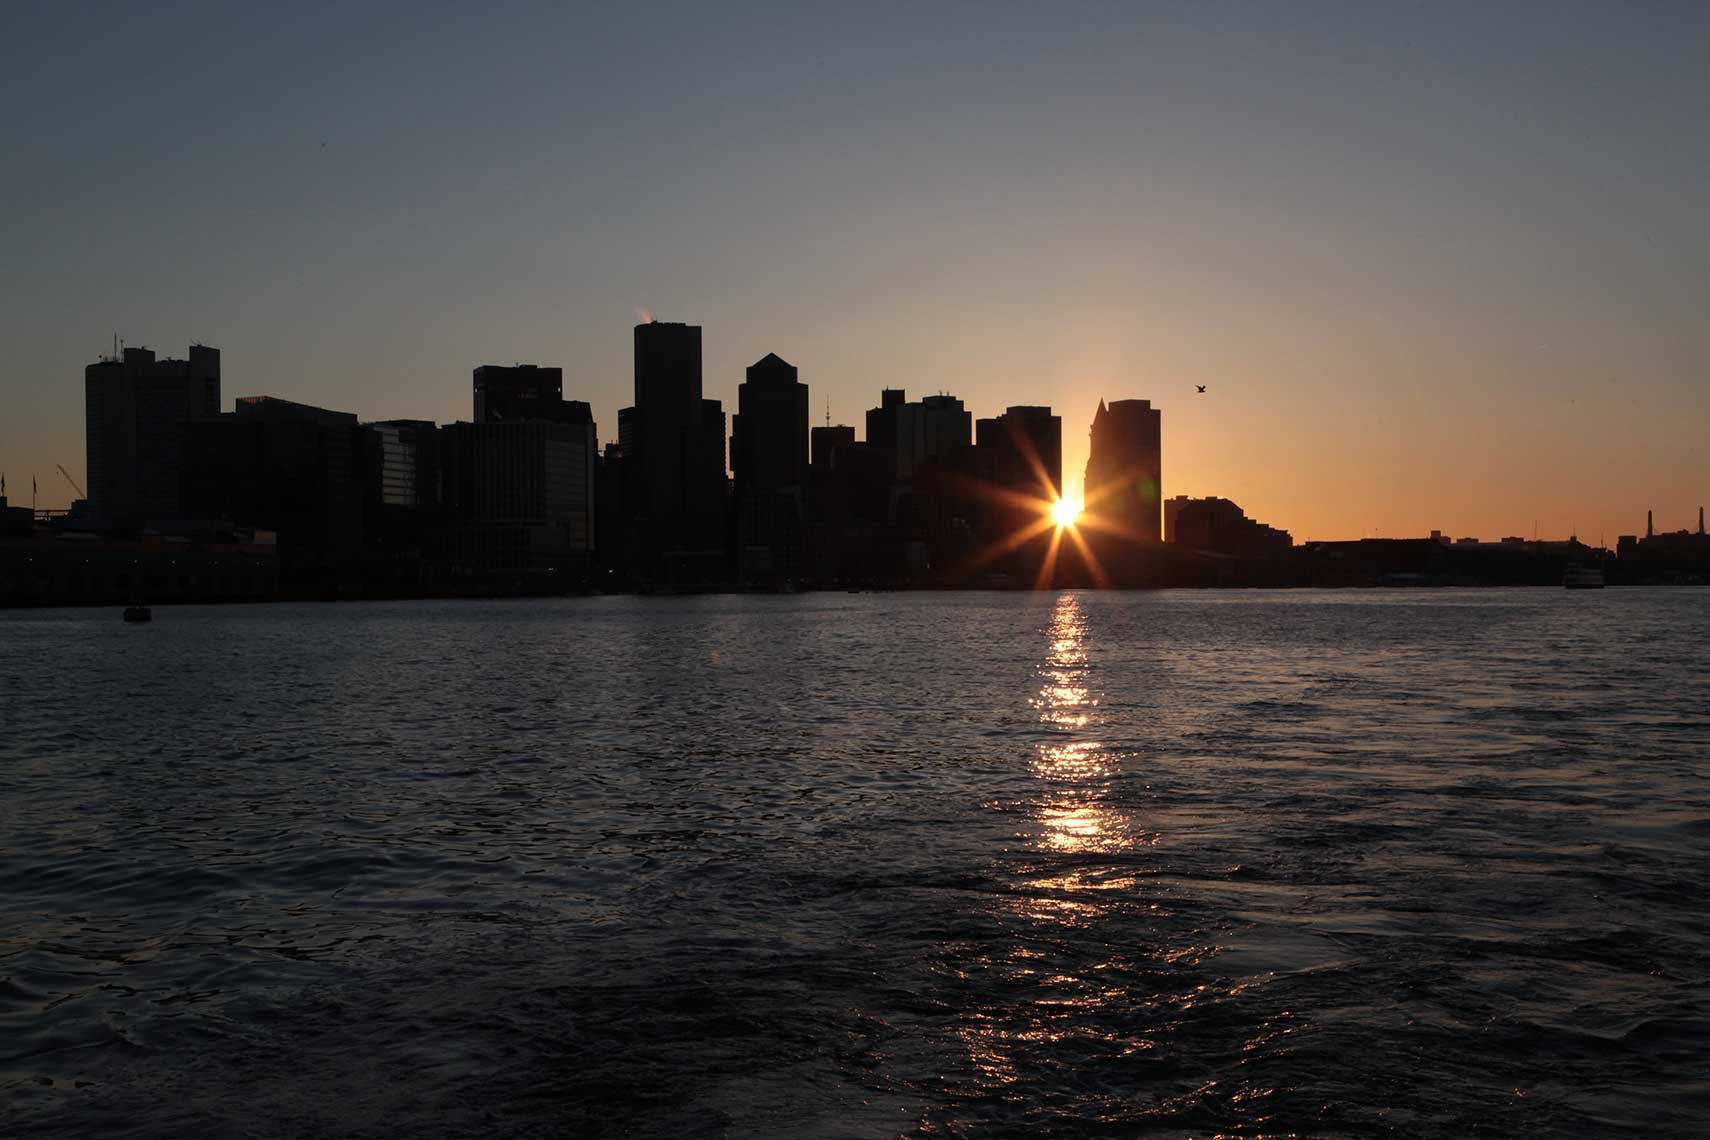 Sunburst over the Boston skyline from the harbor